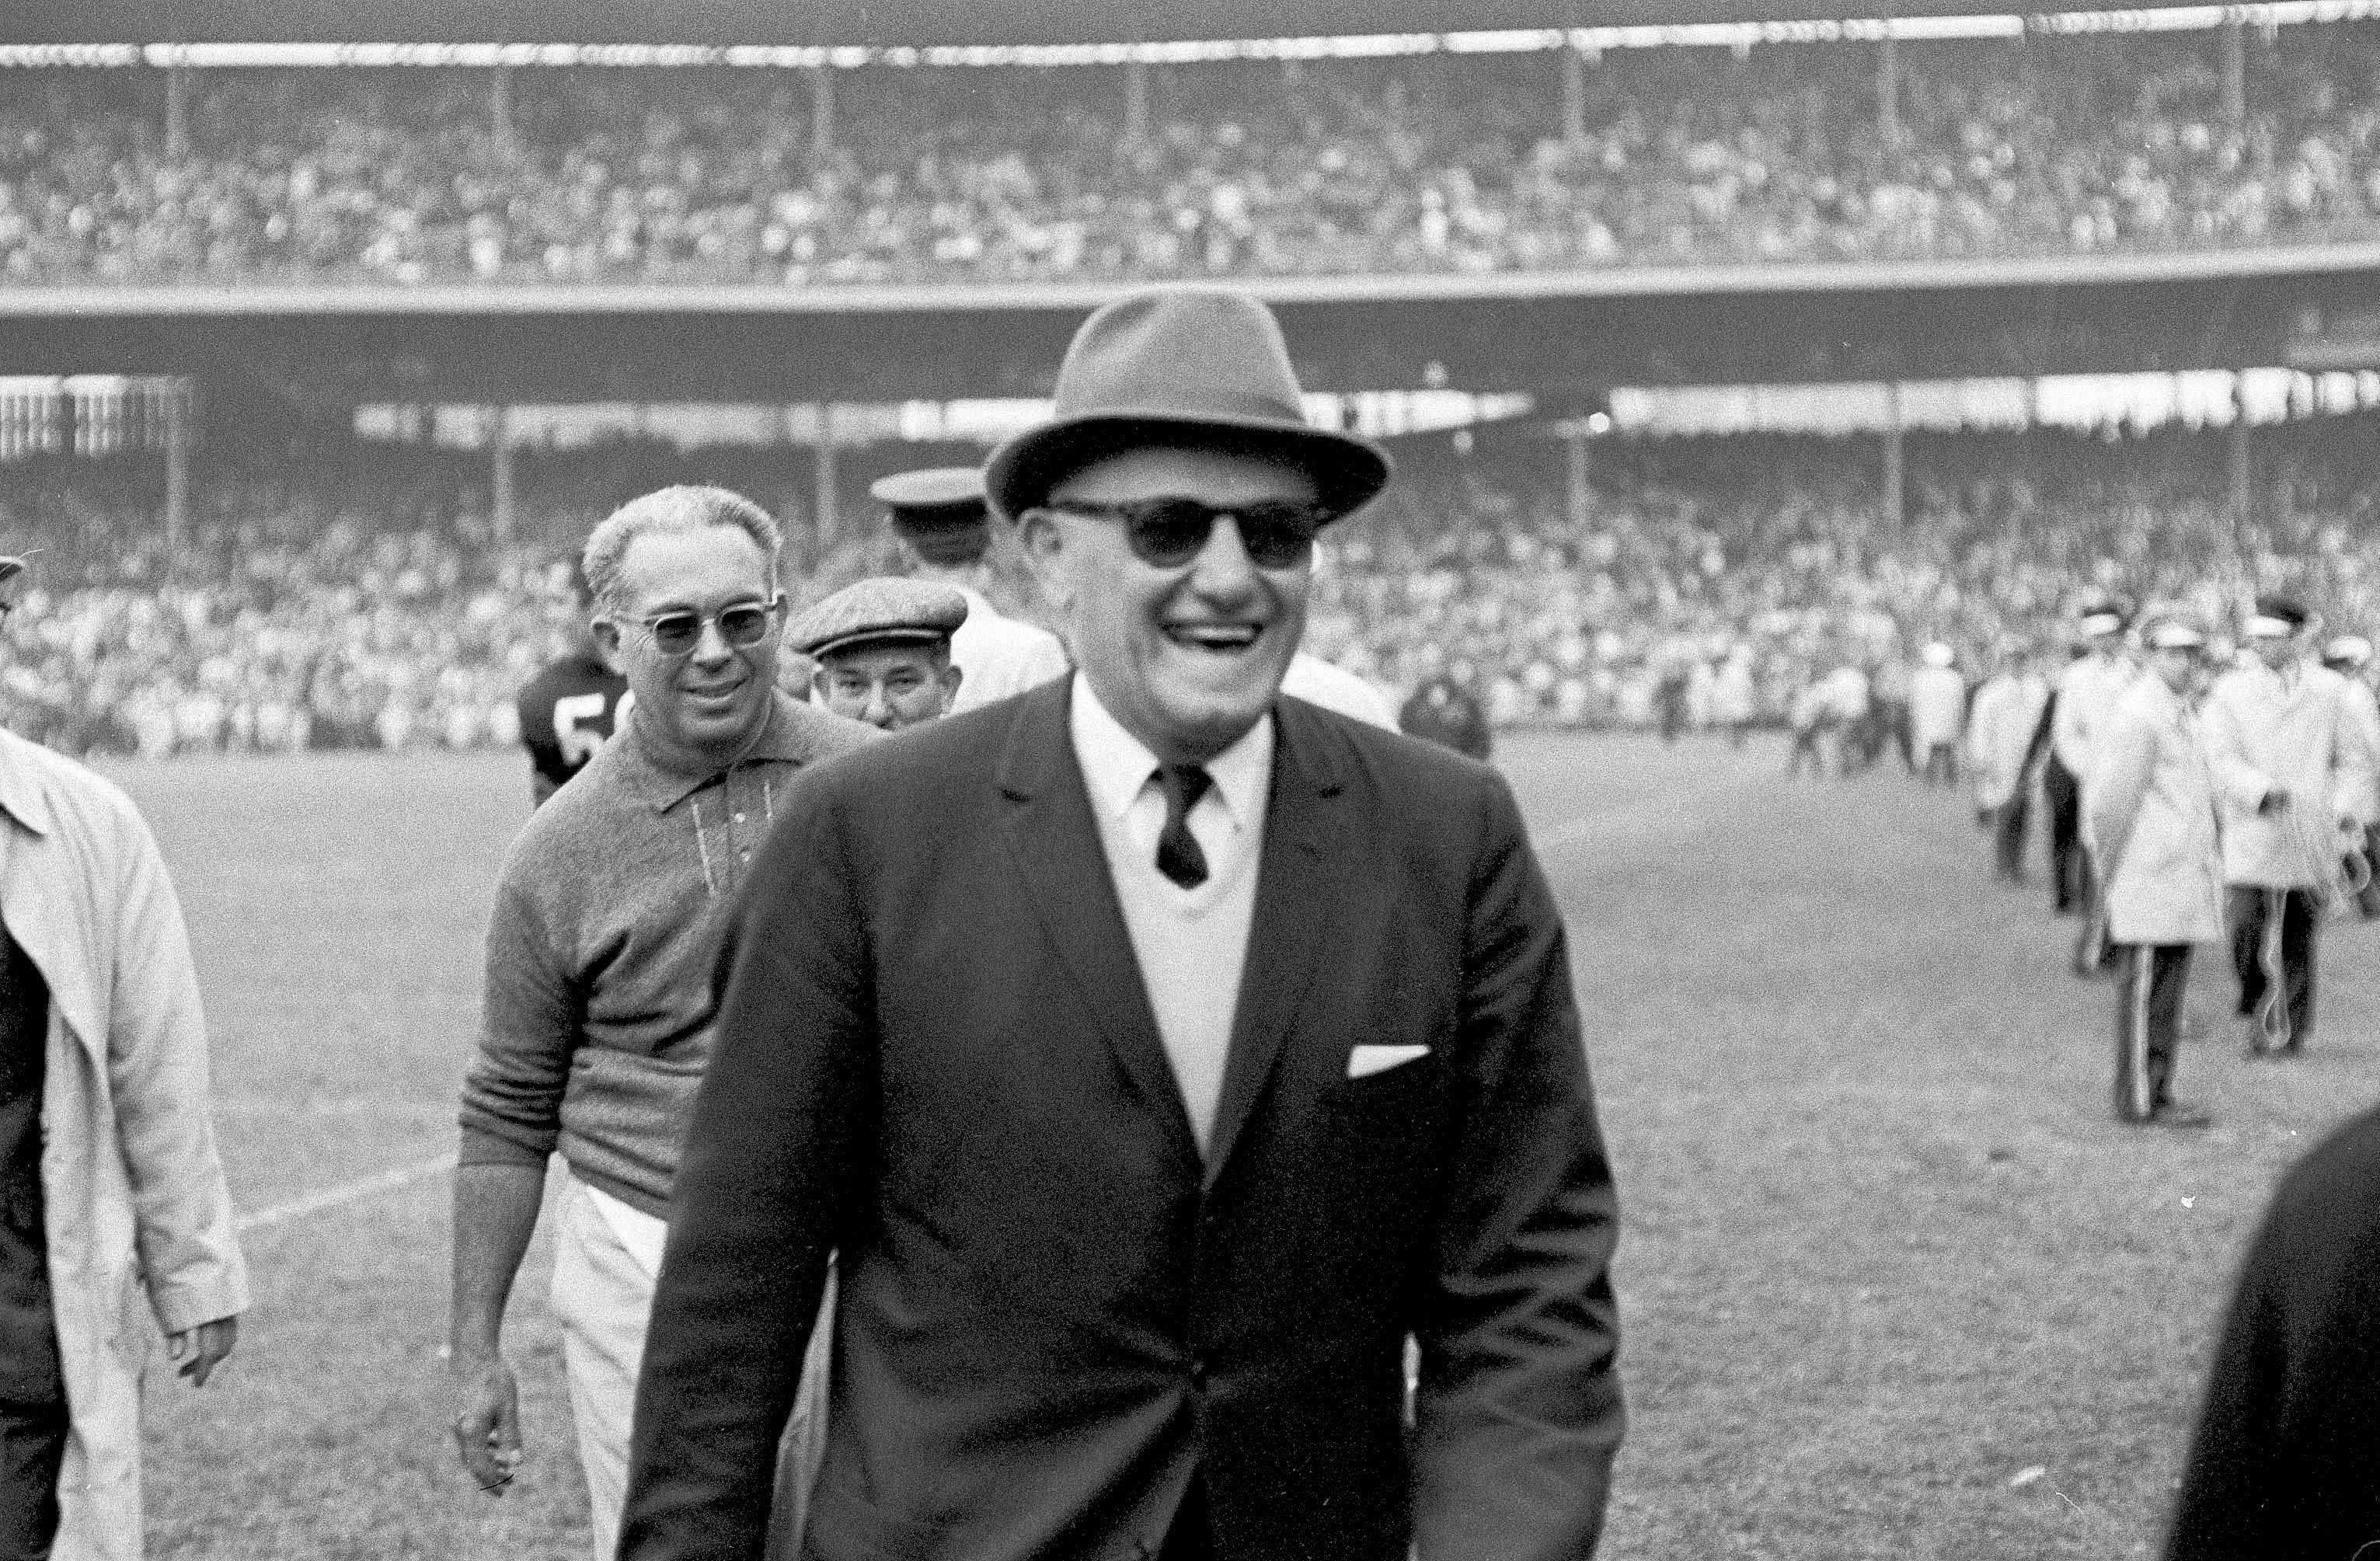 George Halas won 318 regular-season games as head coach of the Chicago Bears, posting a winning percentage of .682.